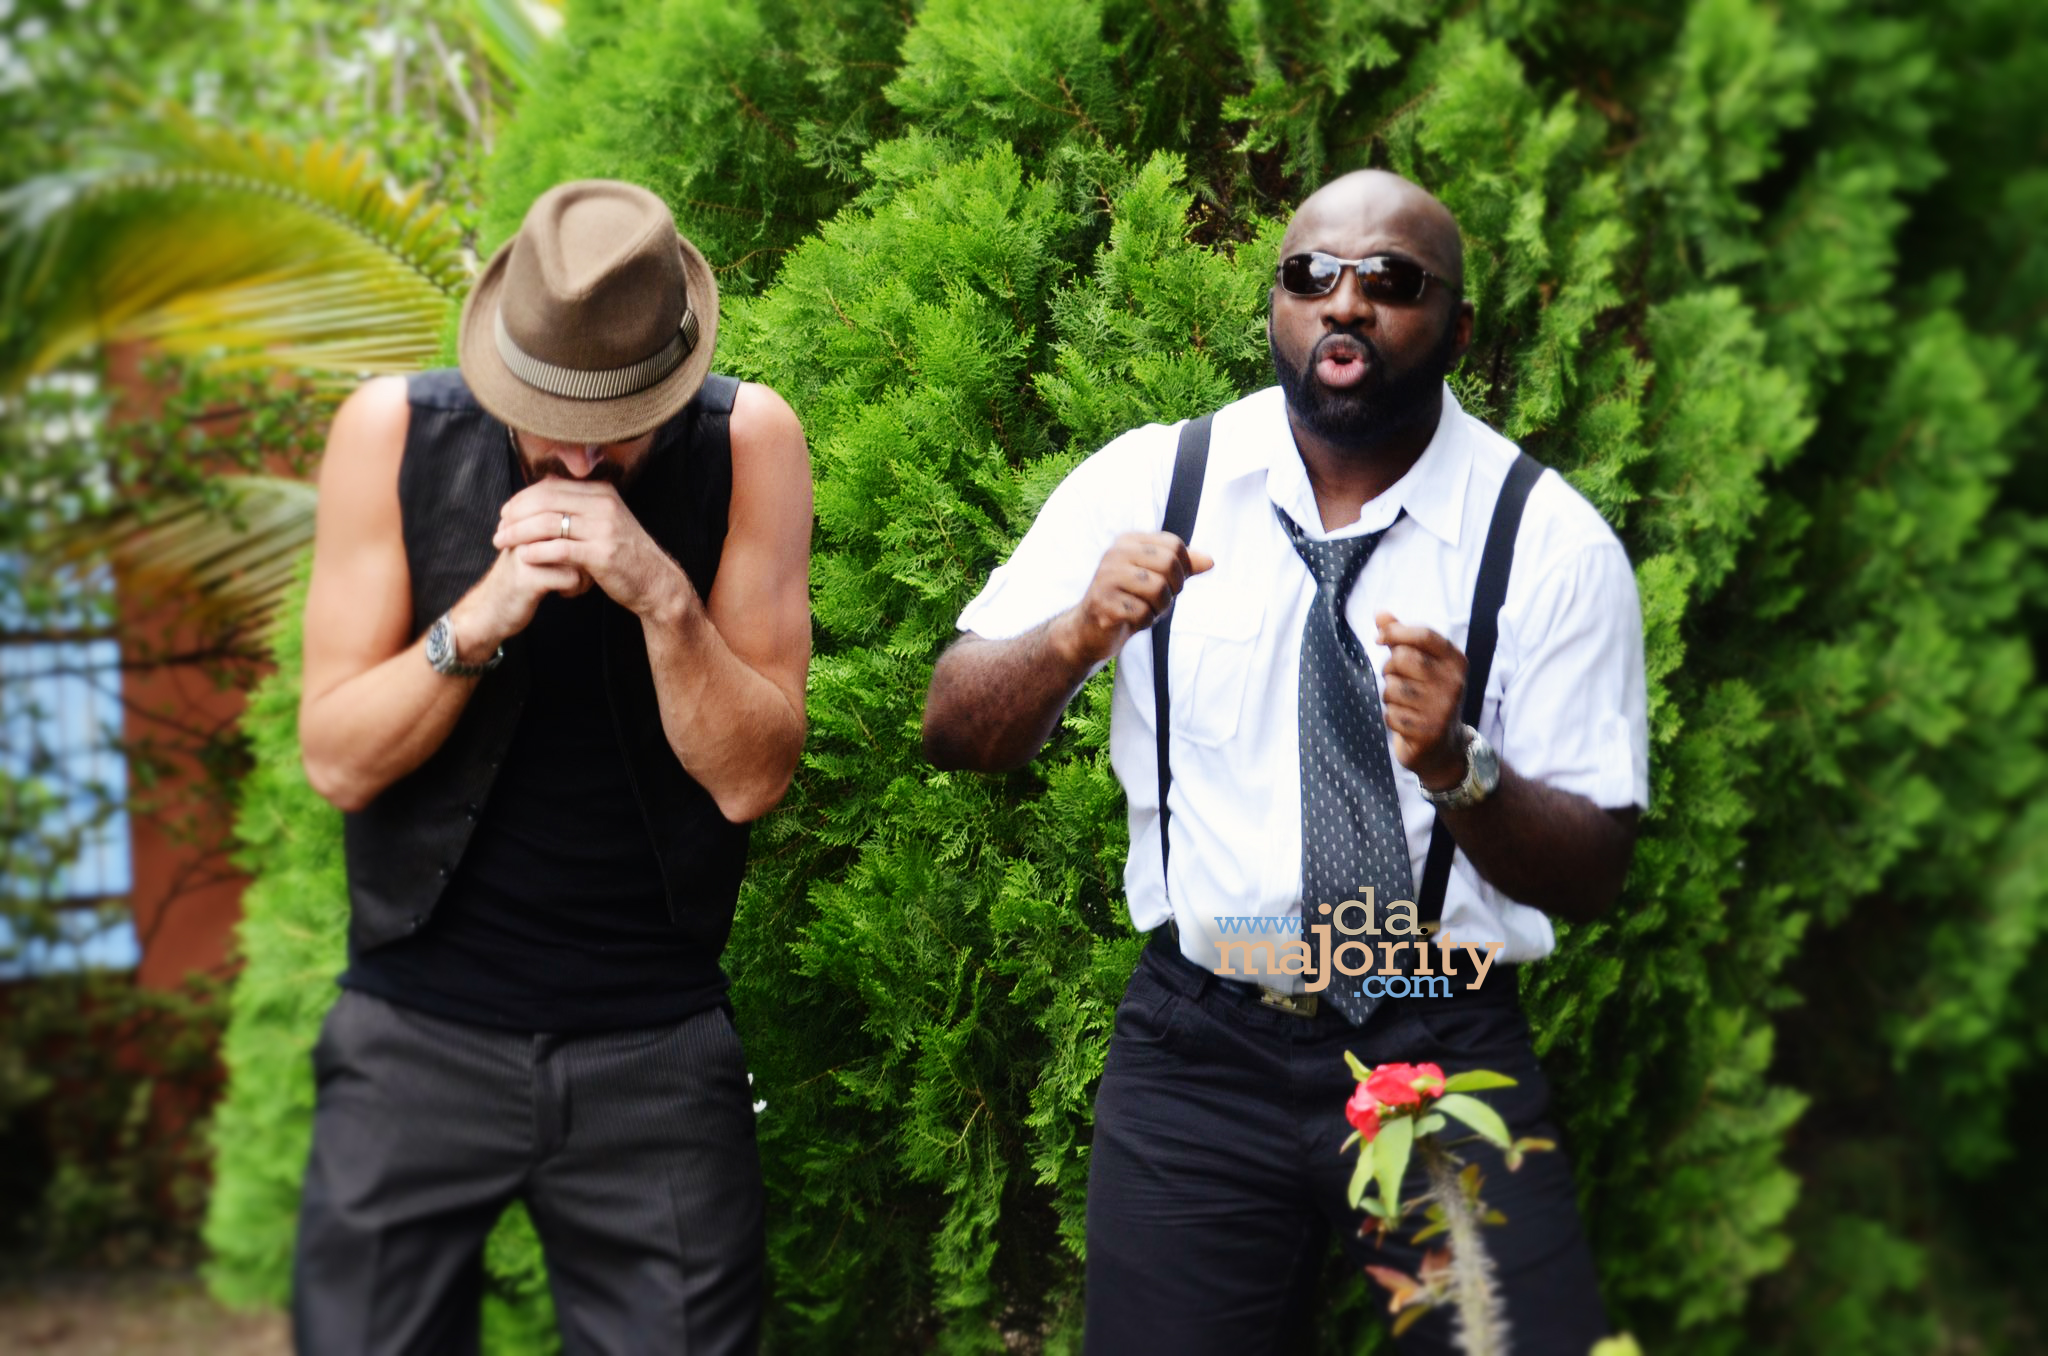 EXCLUSIVE BEHIND THE SCENES :RICHIE STEPHENS & GENTLEMAN – I FOUND HEAVEN (VIDEO SHOOT)